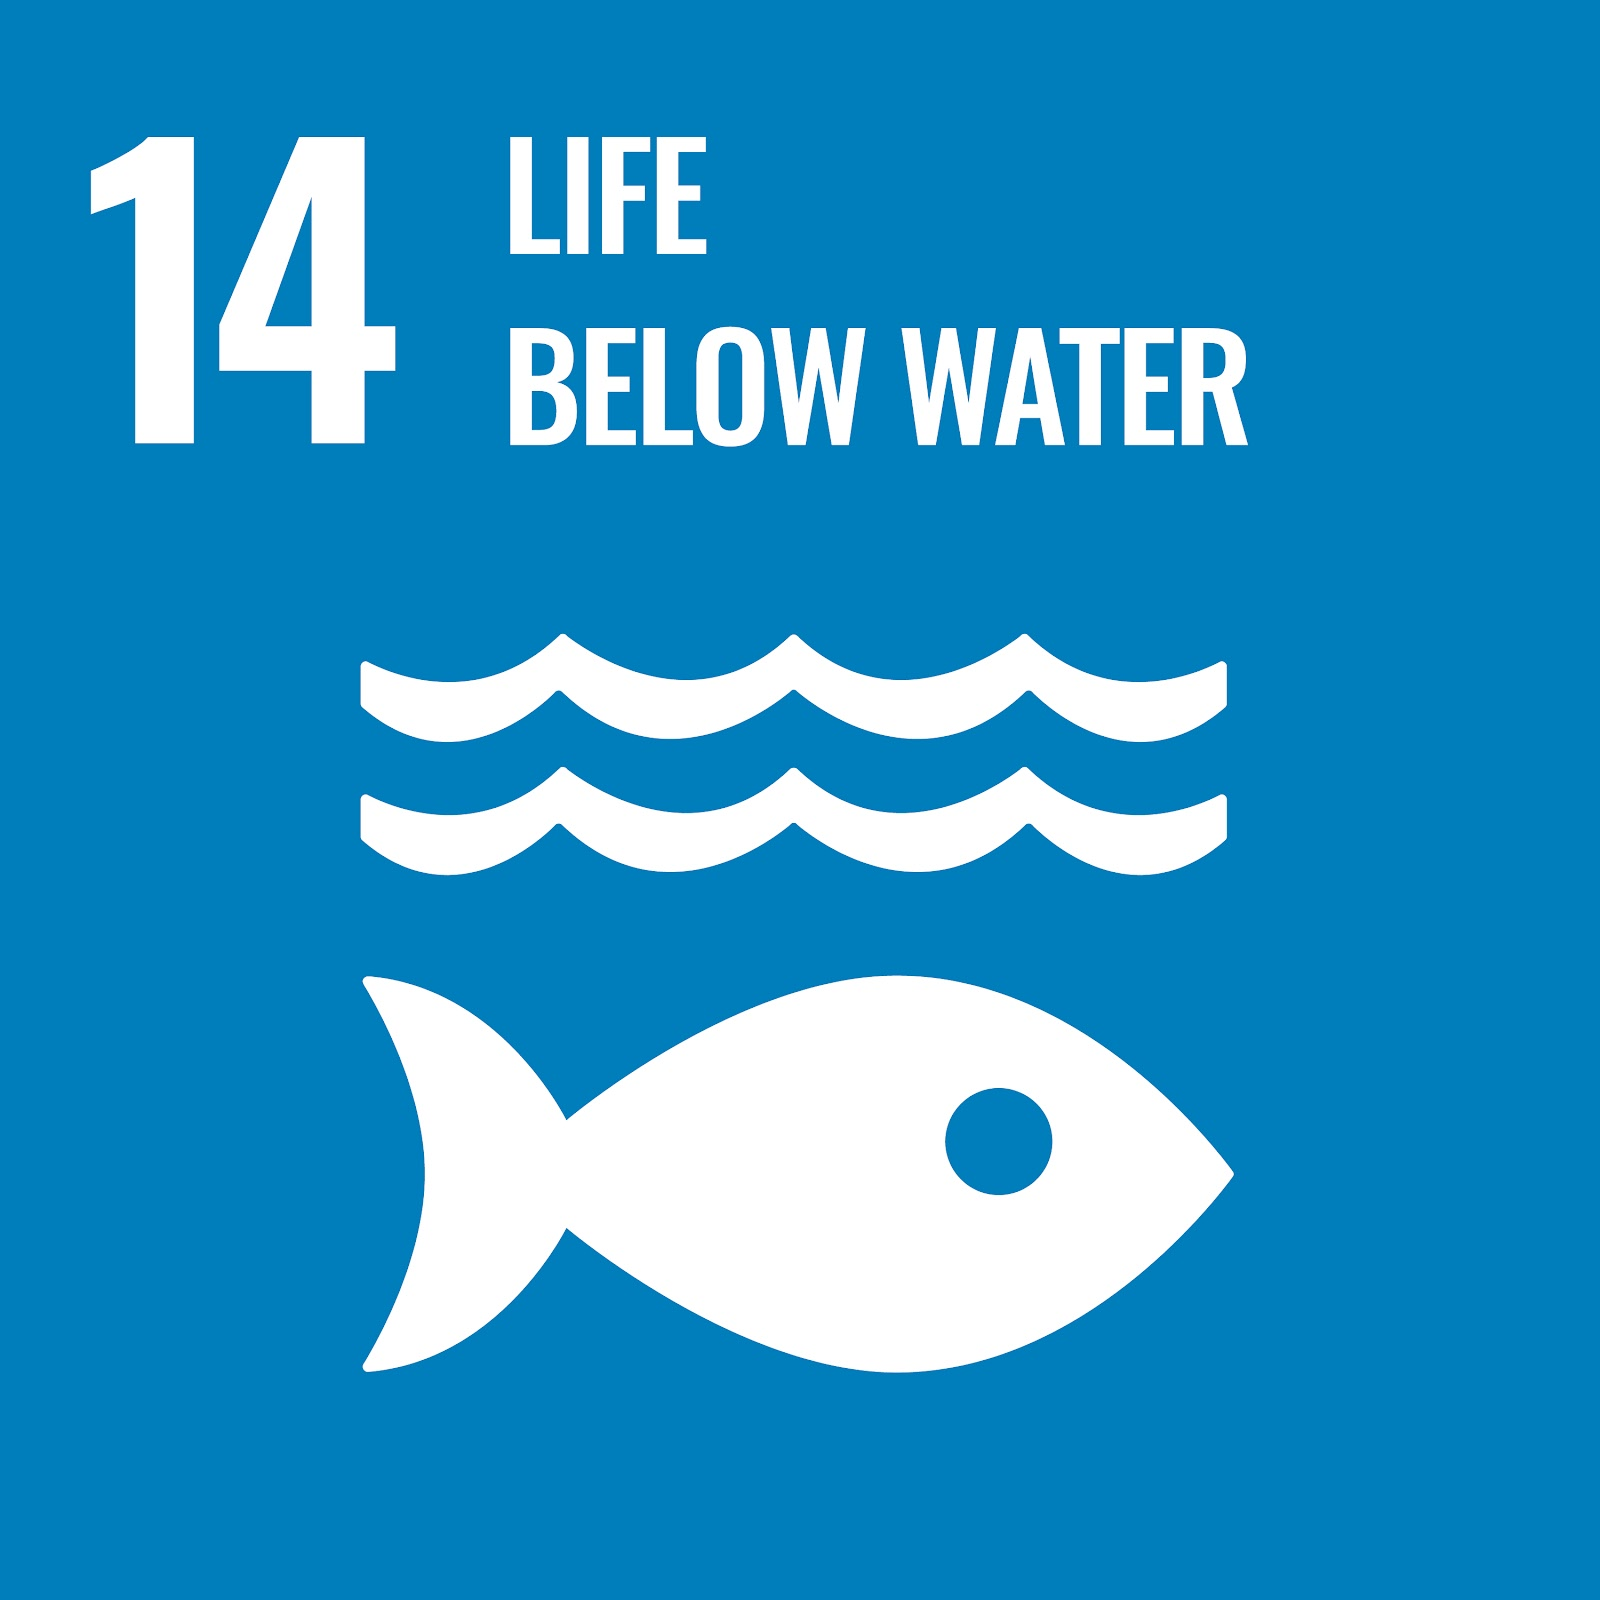 Sustainable Development Goal 14. Conserve and sustainably use the oceans, seas and marine resources.